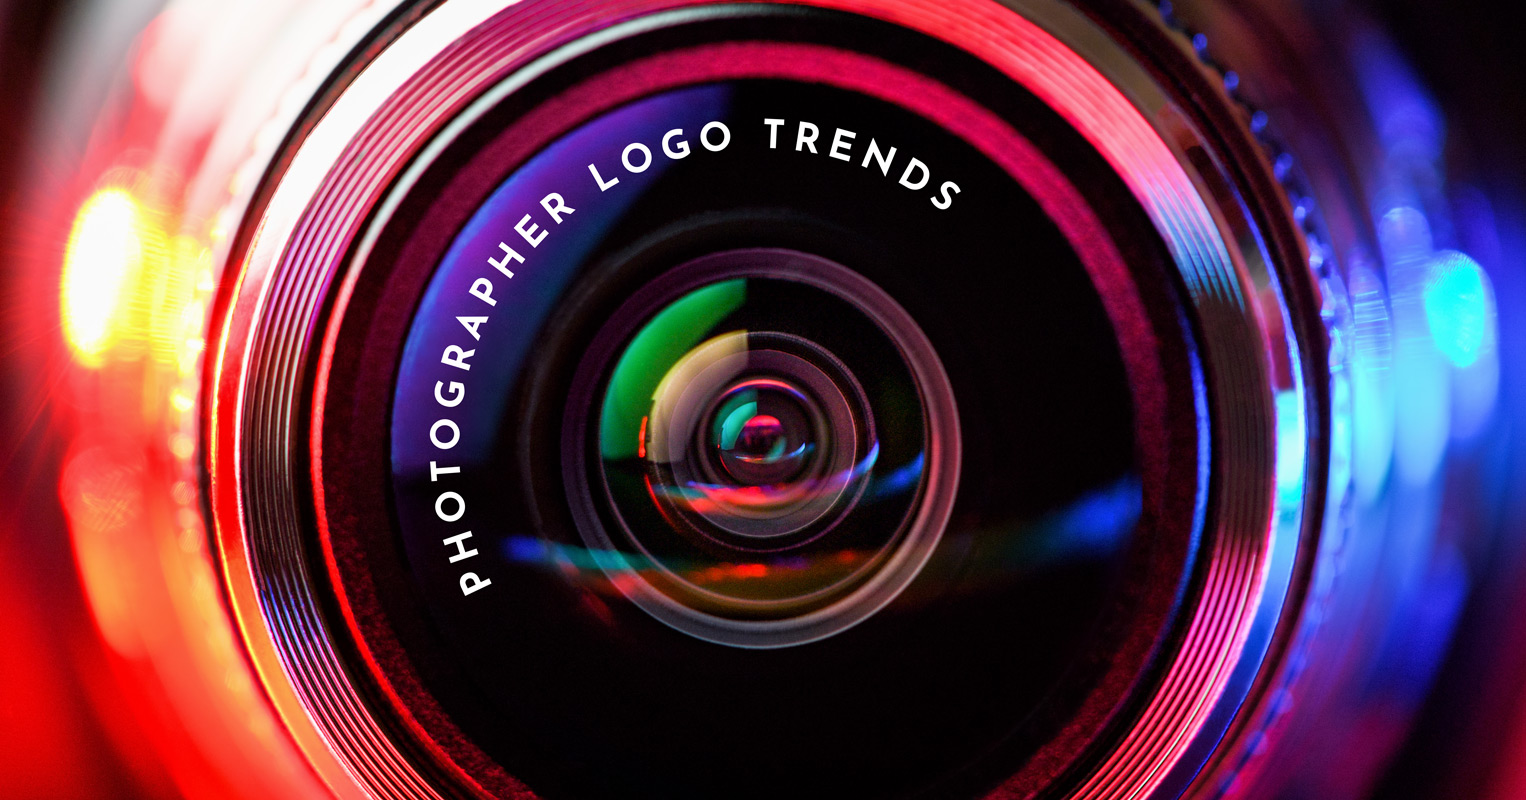 The 5 Photographer Logo Design Trends You Must Know